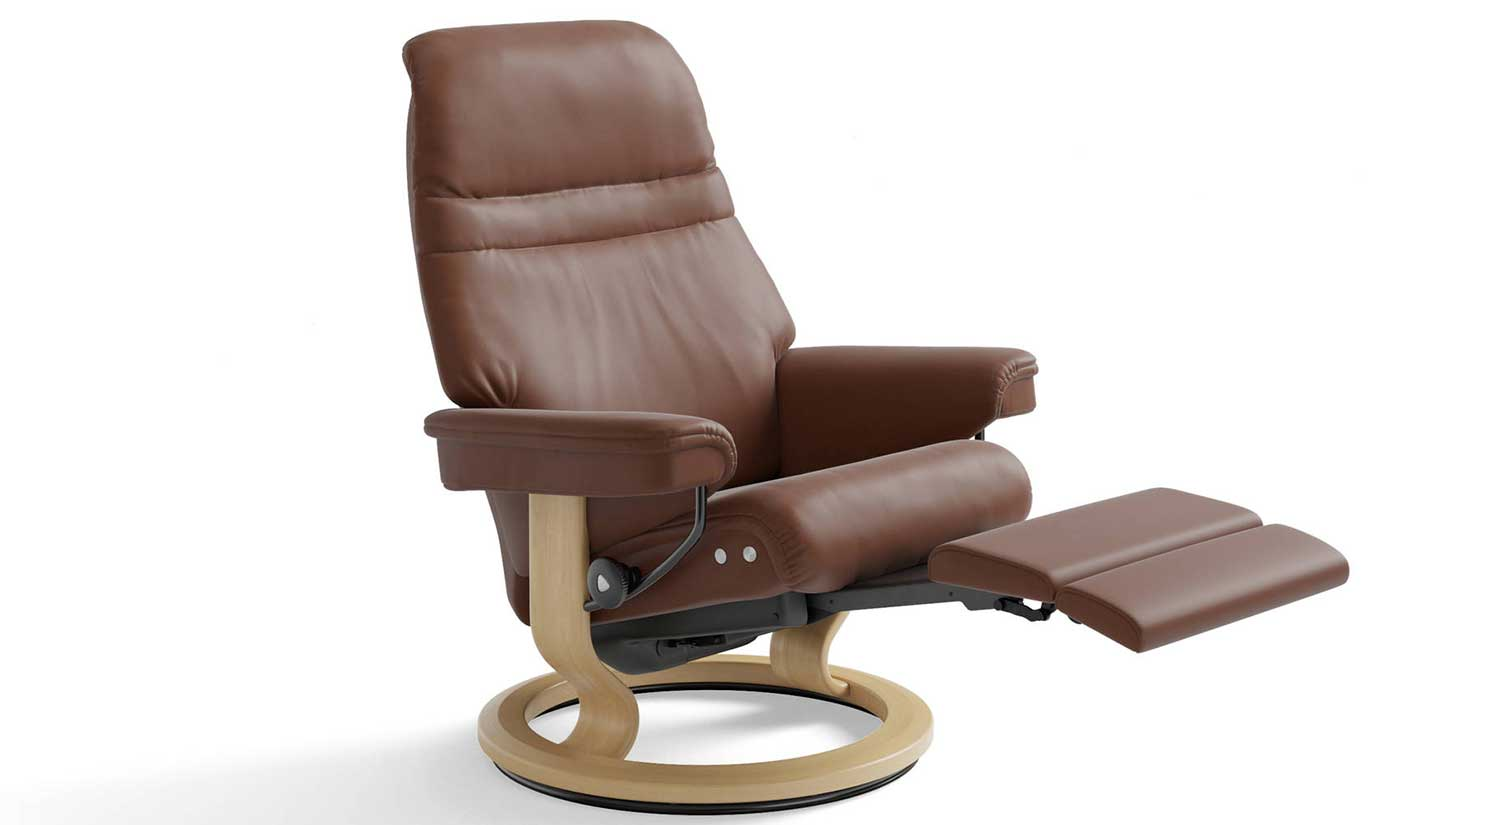 Sunrise Stressless Recliner with Leg Comfort